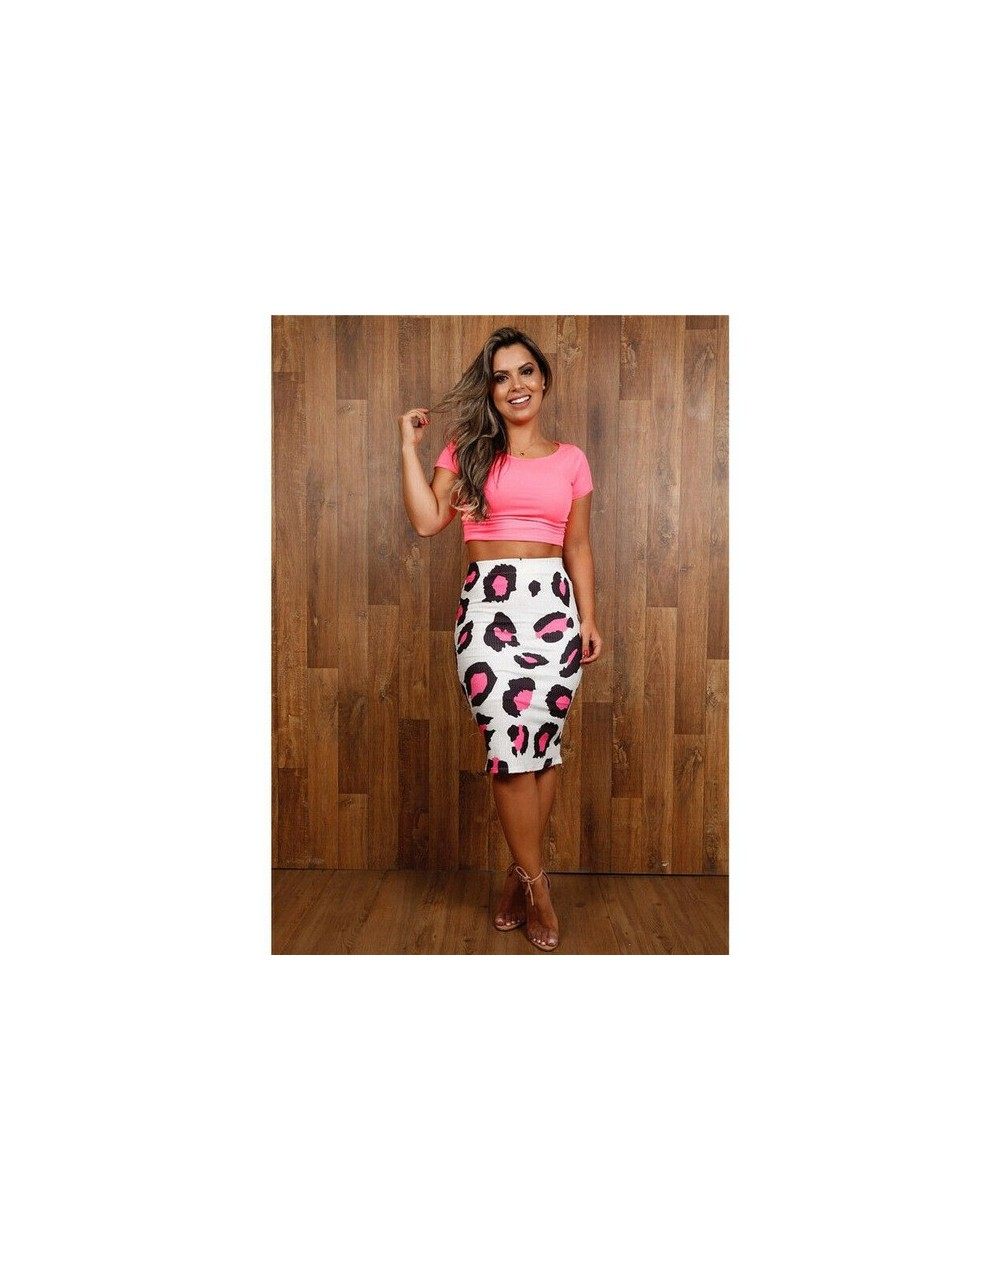 US Women Sexy Printed Bodycon Clubwear Skirt Cocktail Evening Pencil Short Skirt - Pink - 4Y3007282139-3